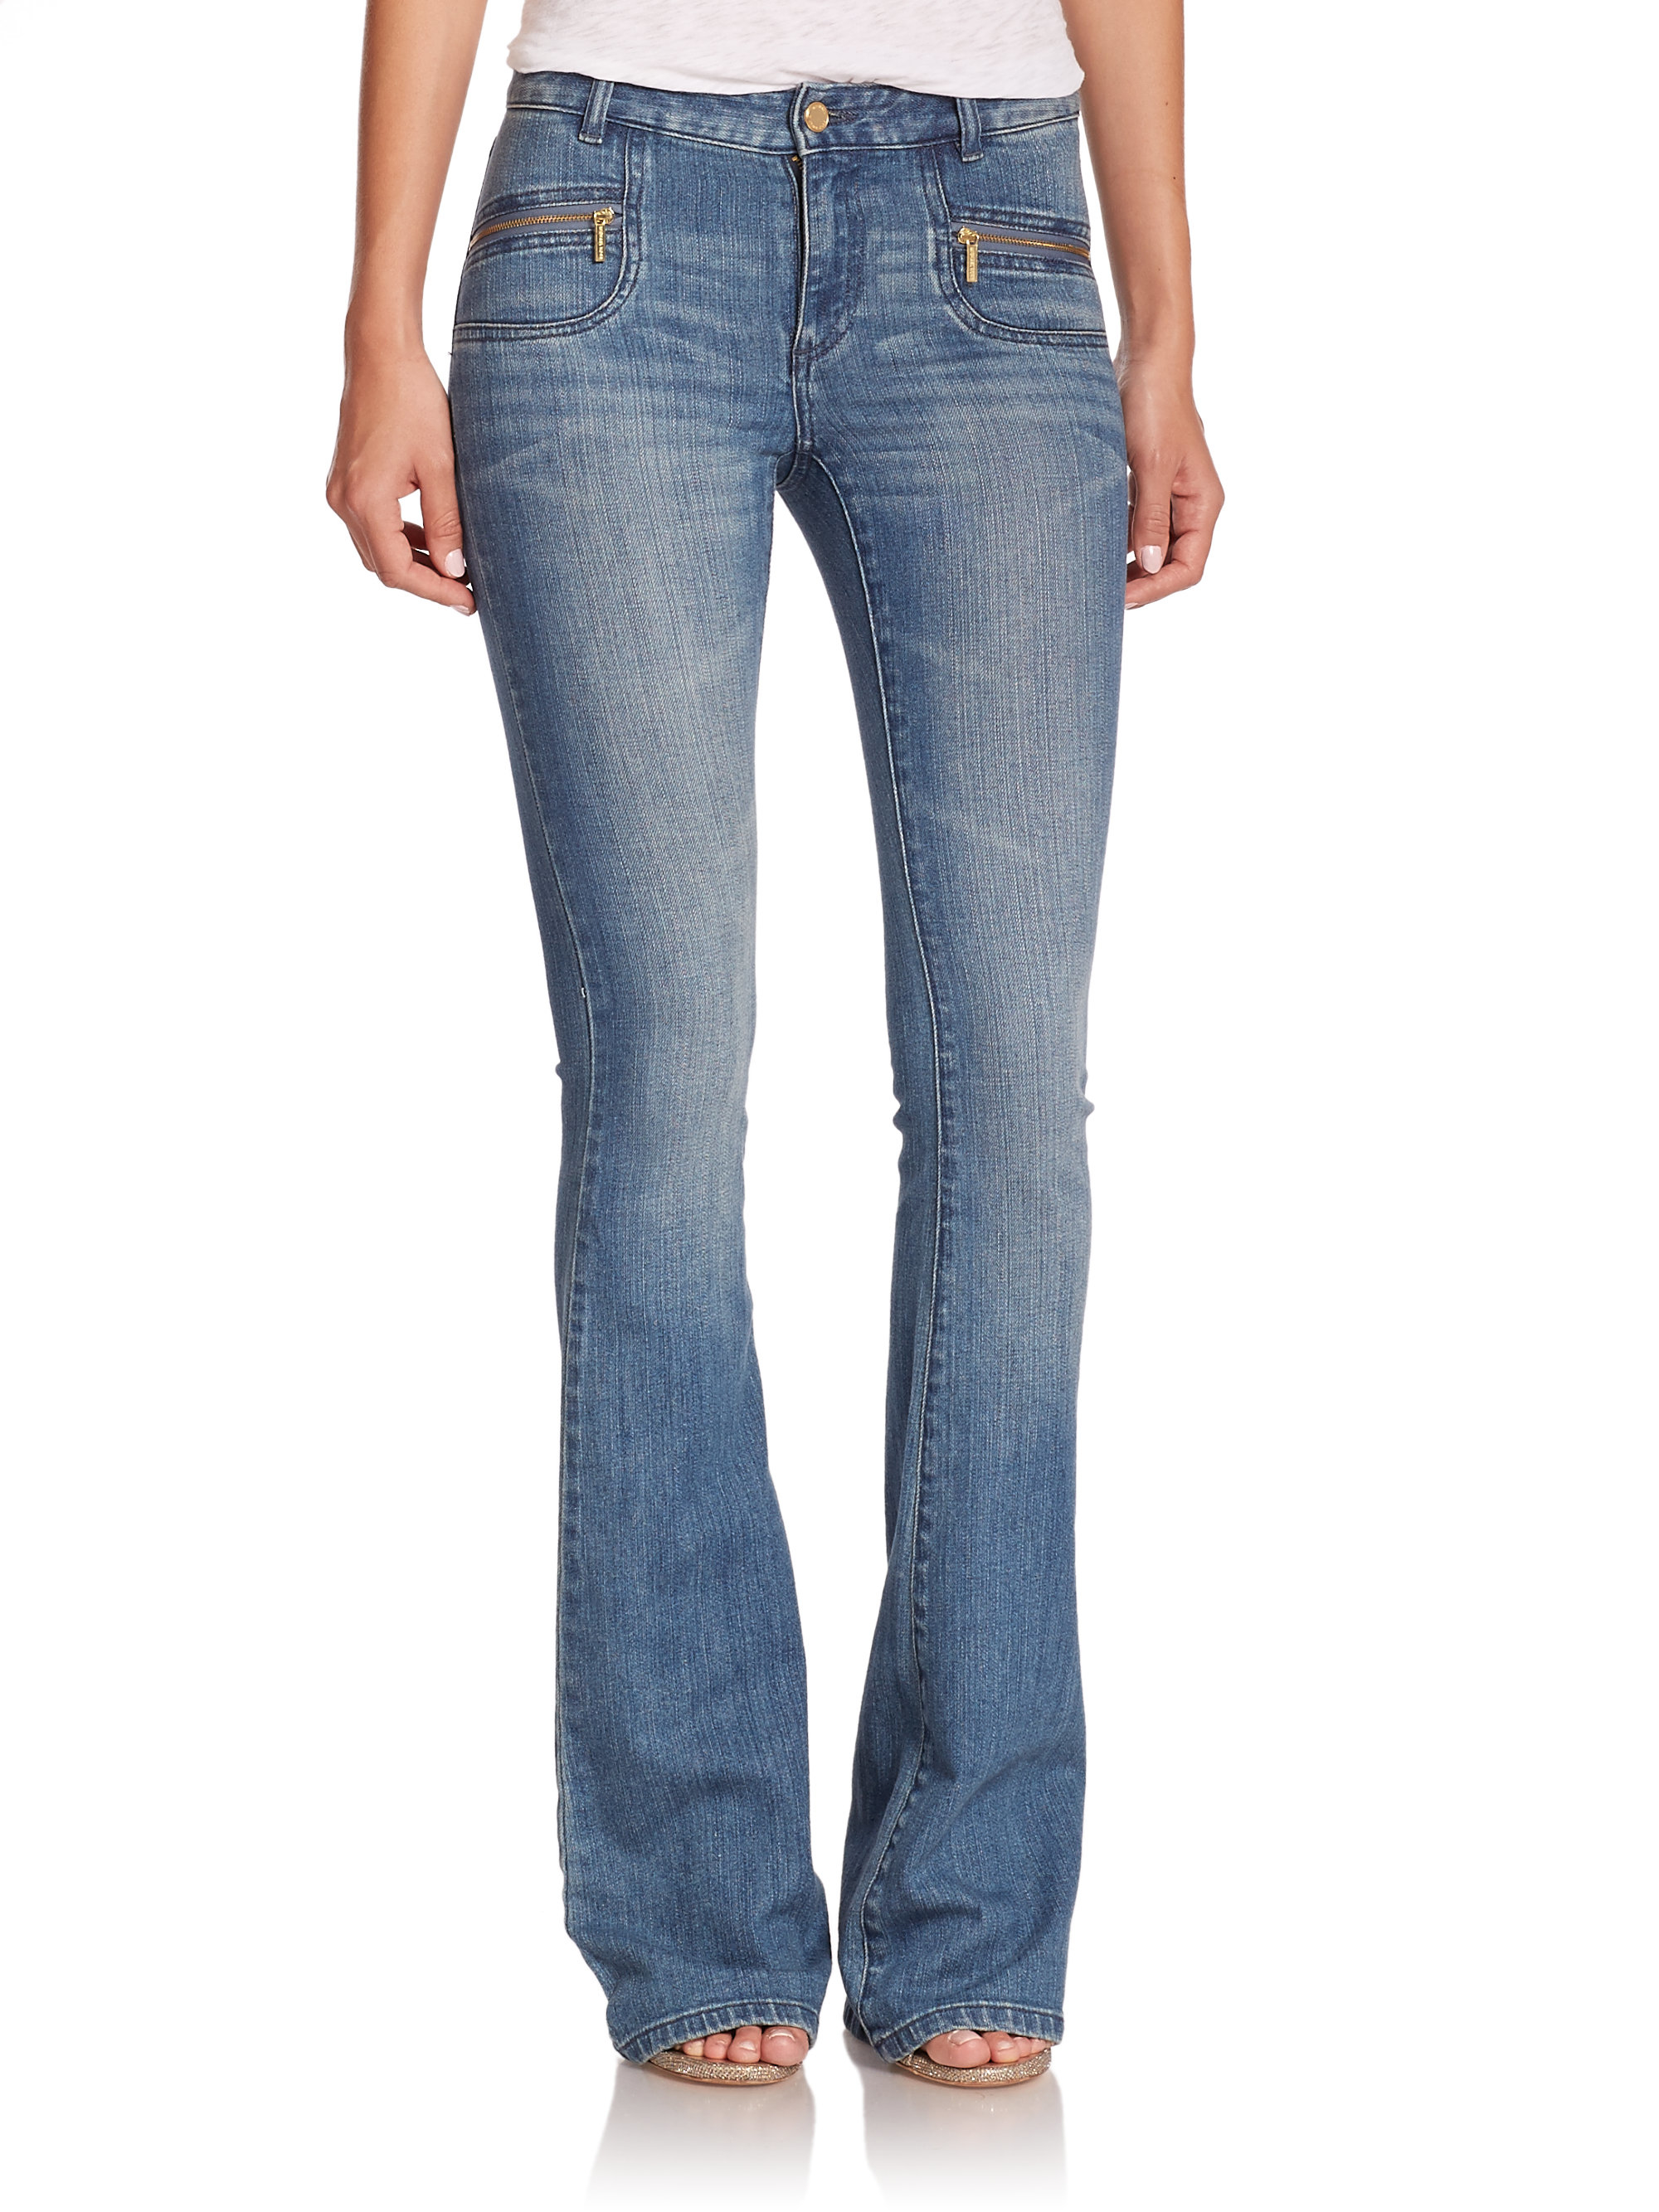 Ralph Lauren Jeans For Women